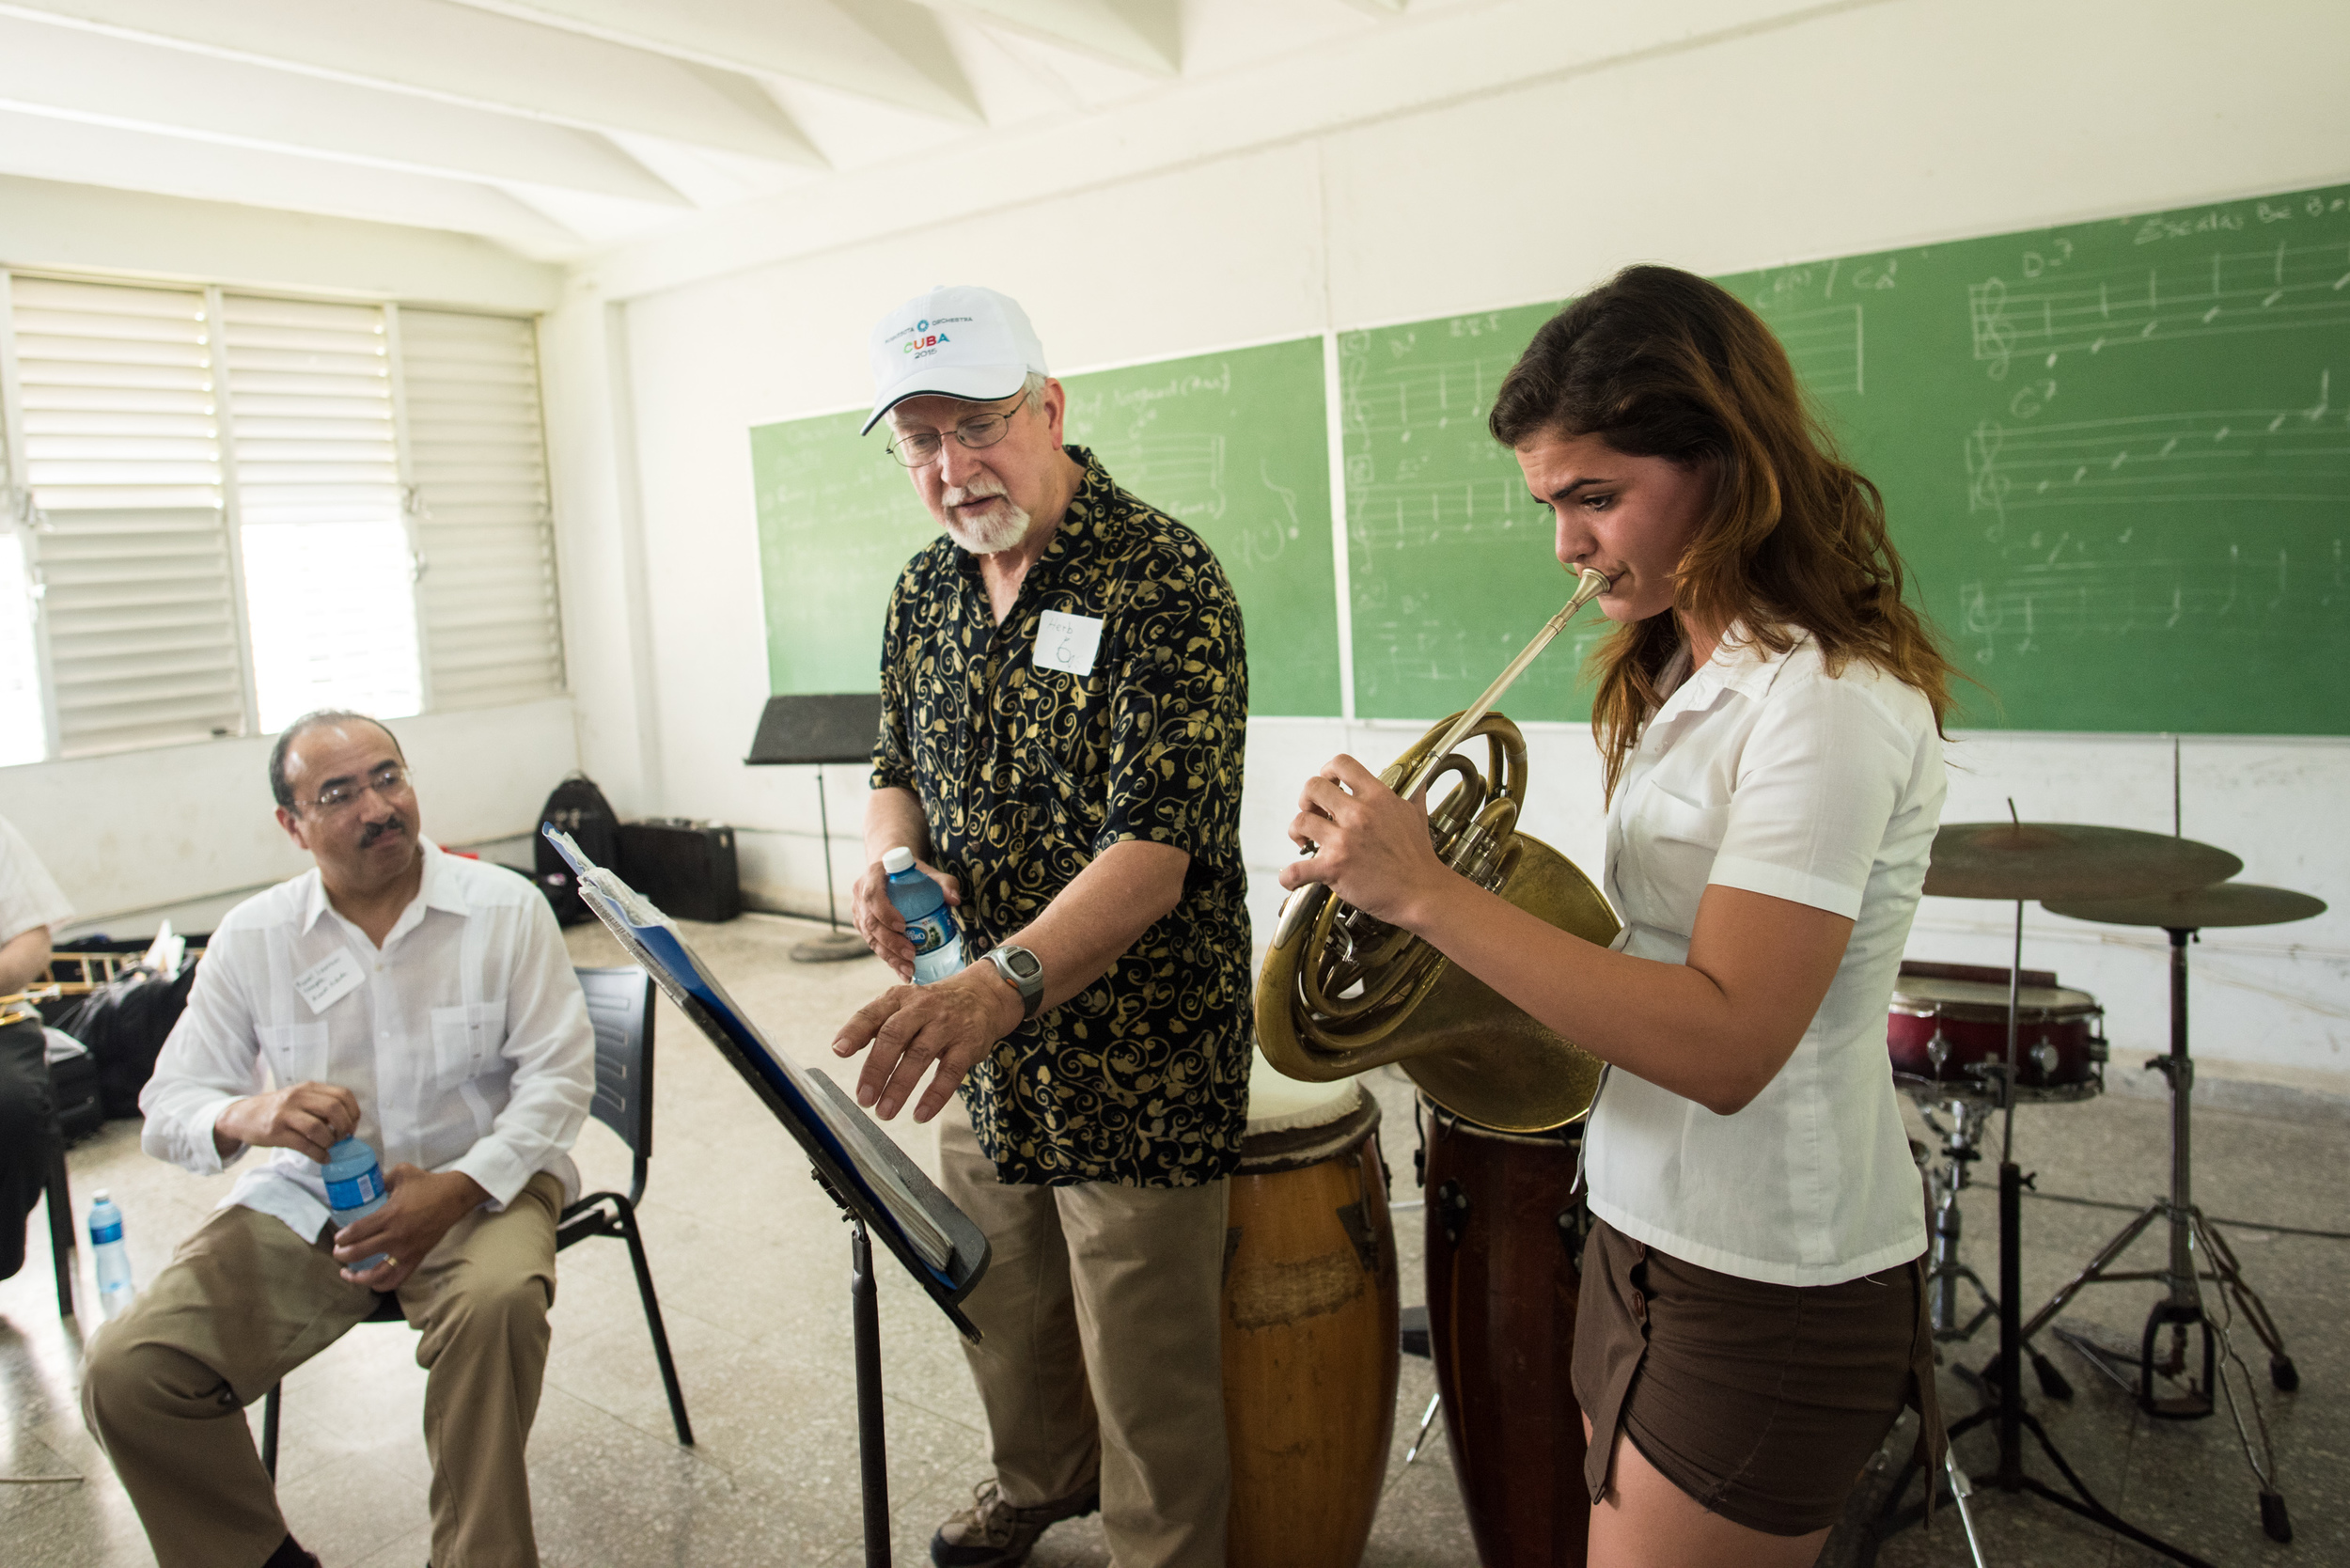 French horn player Herb Winslow worked with a student at the Escuela Nacional de Arte during a master class on Thursday, where trumpeter Manny Laureano translated